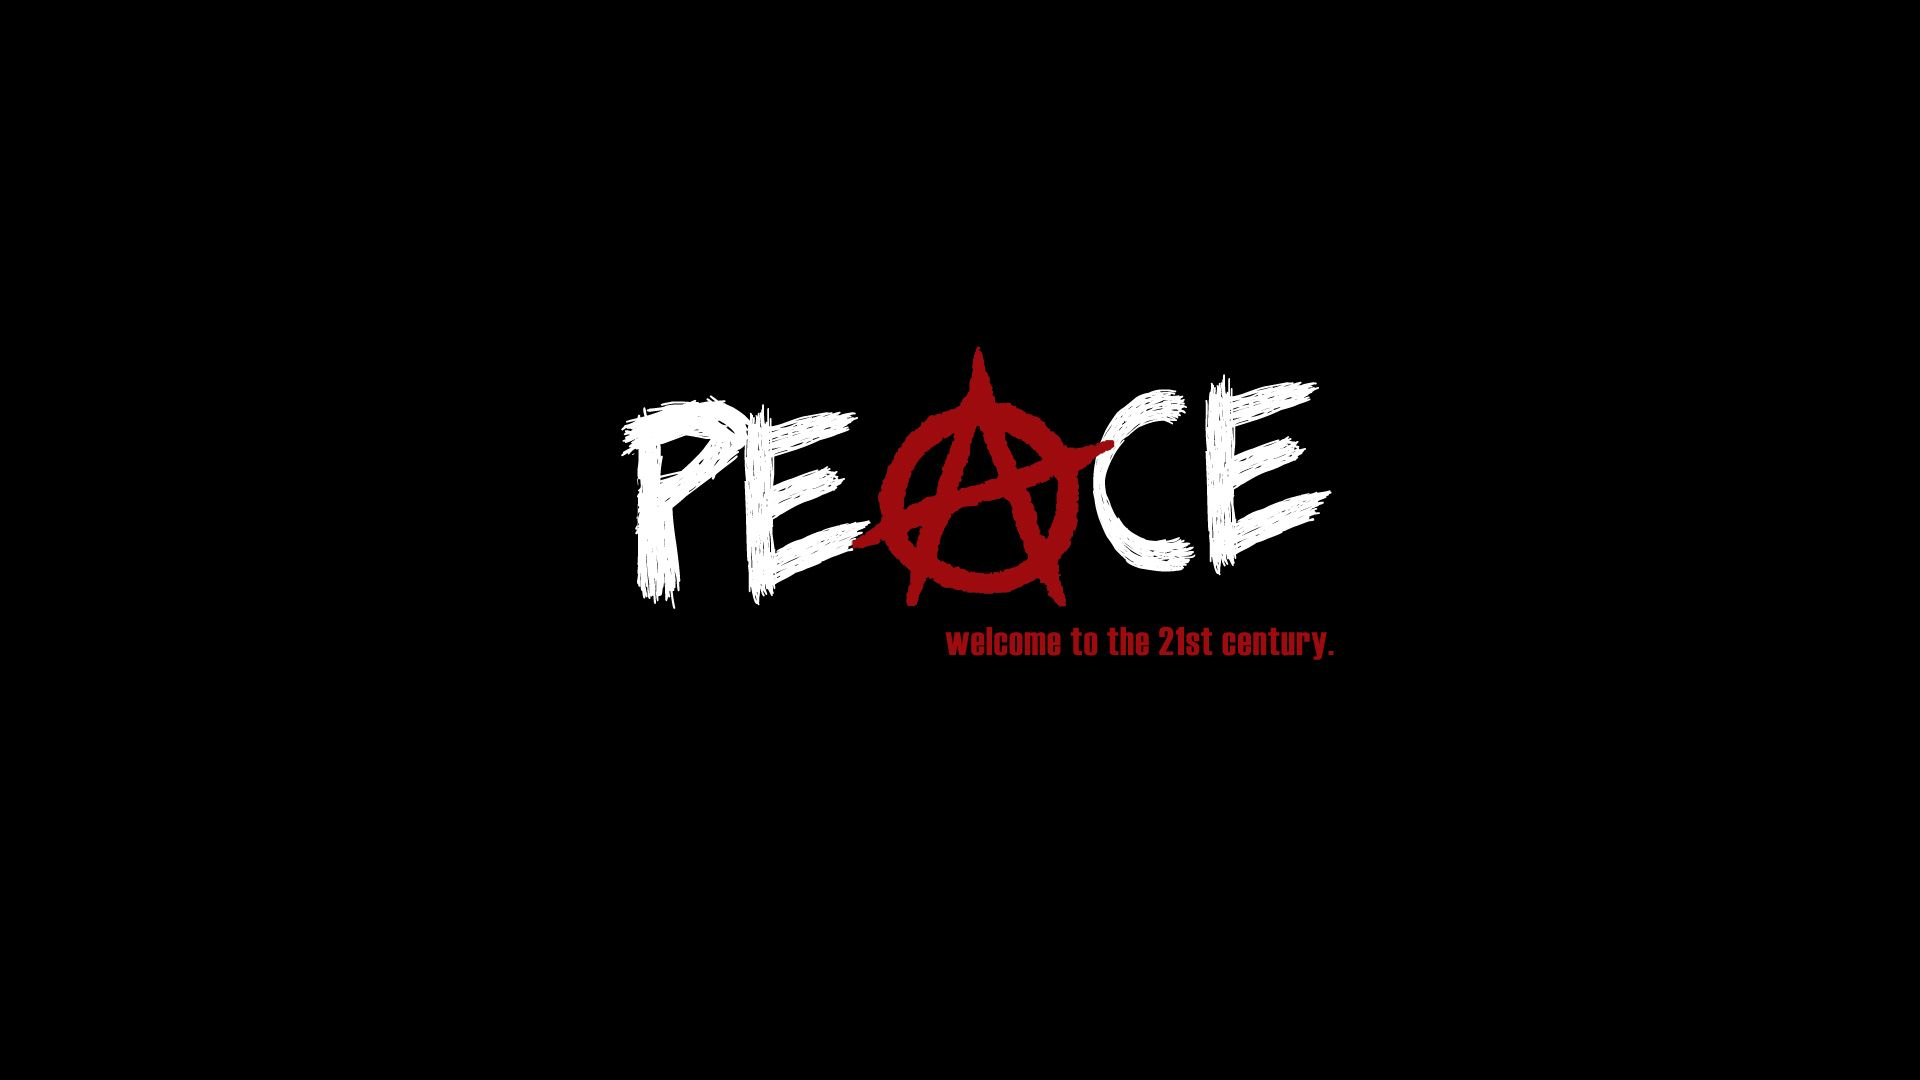 Peace jpg picture